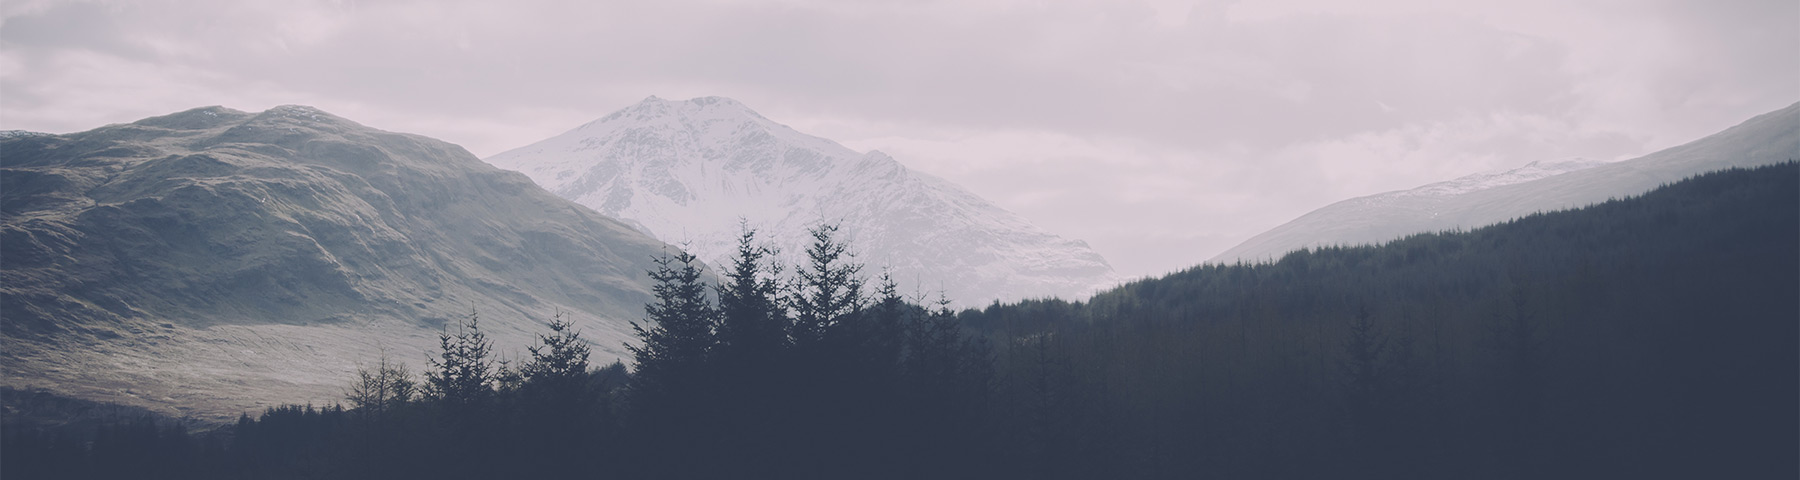 pano-scotland-mountains